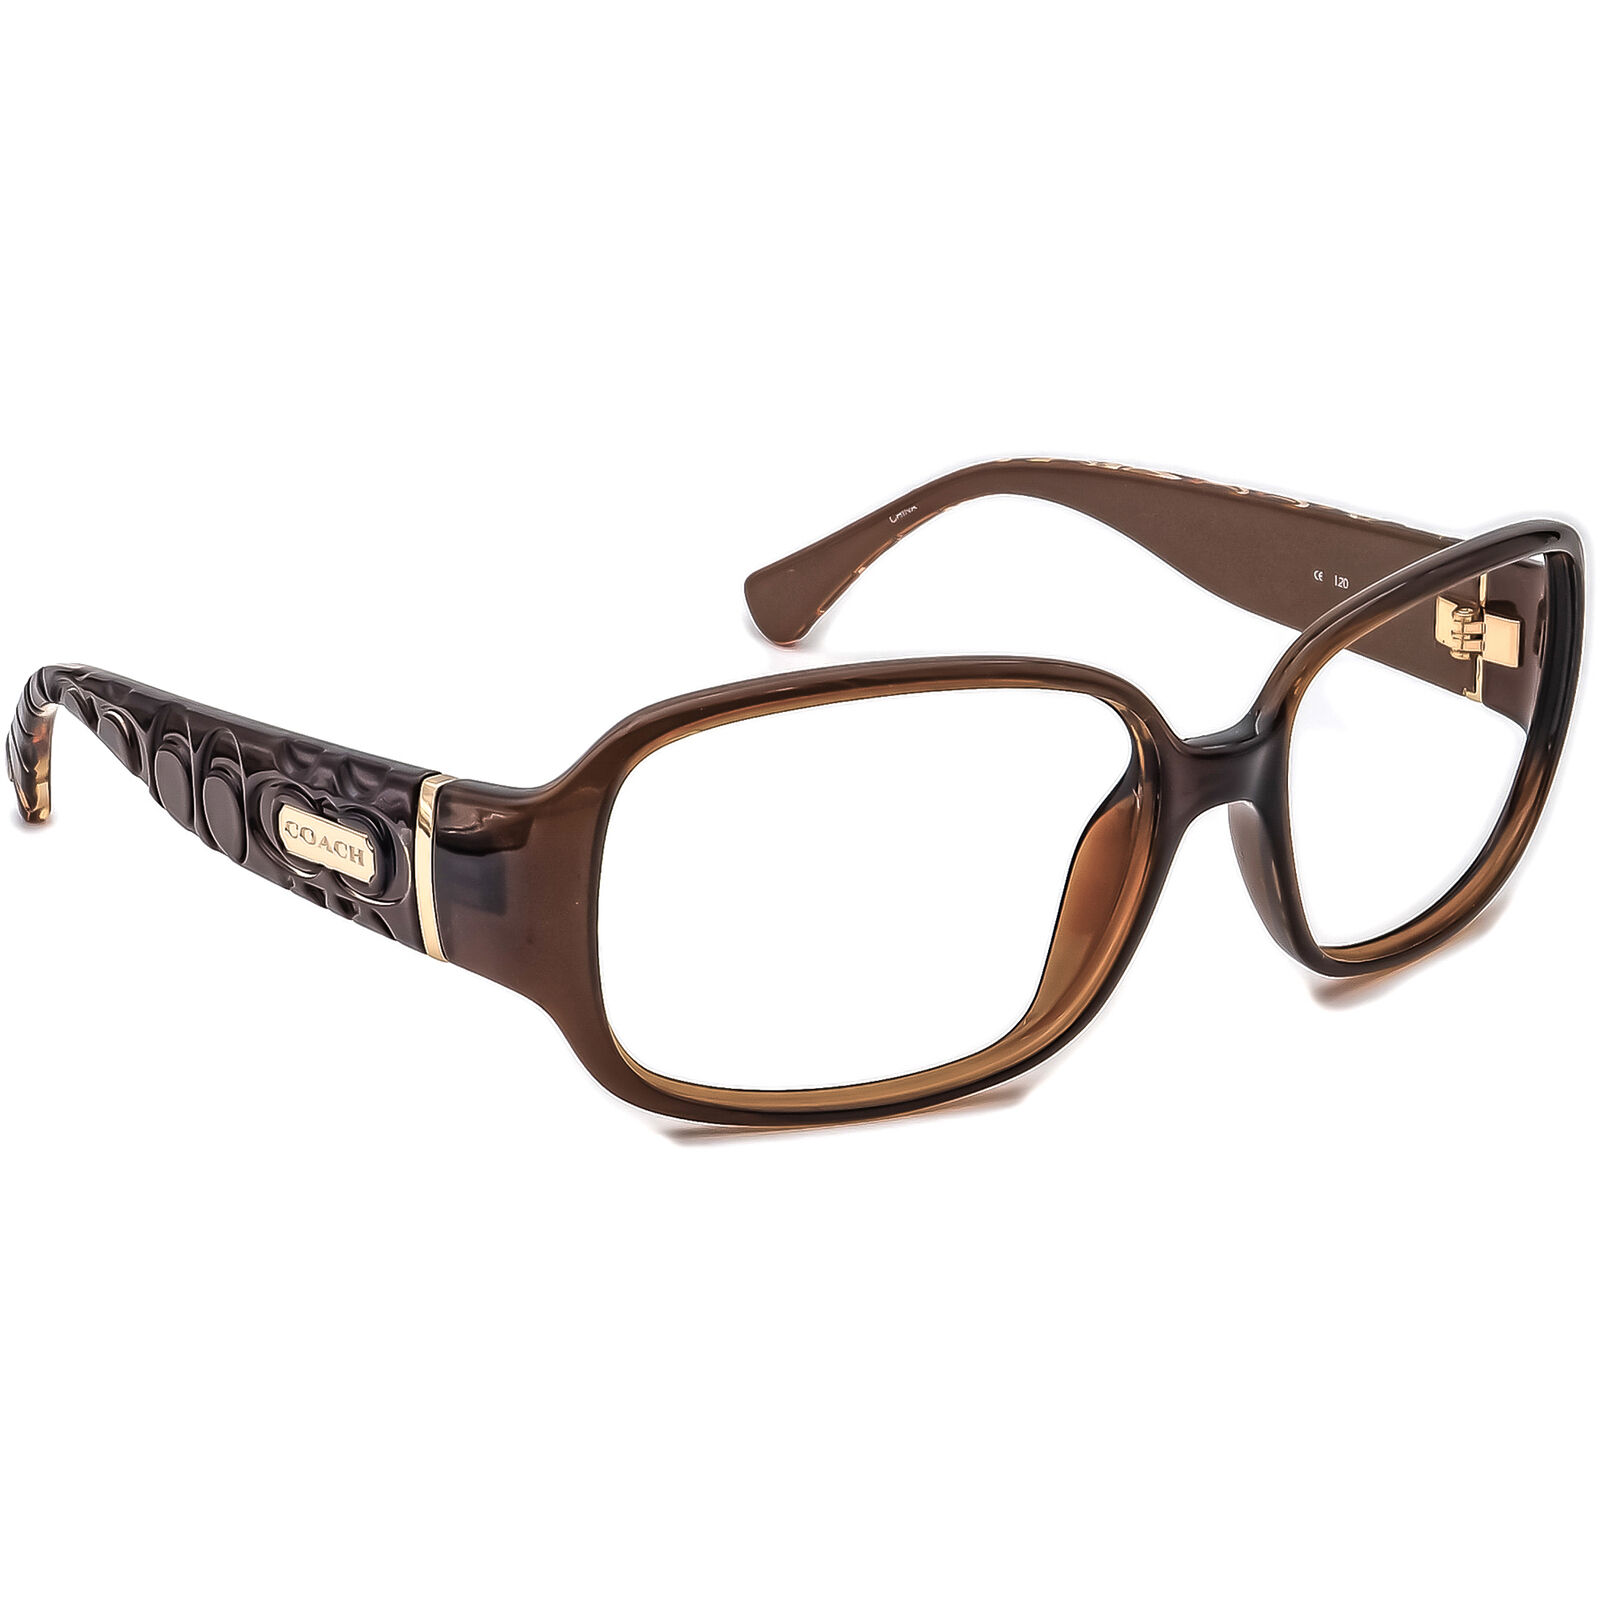 Coach Women's Sunglasses Frame Only S3011 Brown Square 55 mm